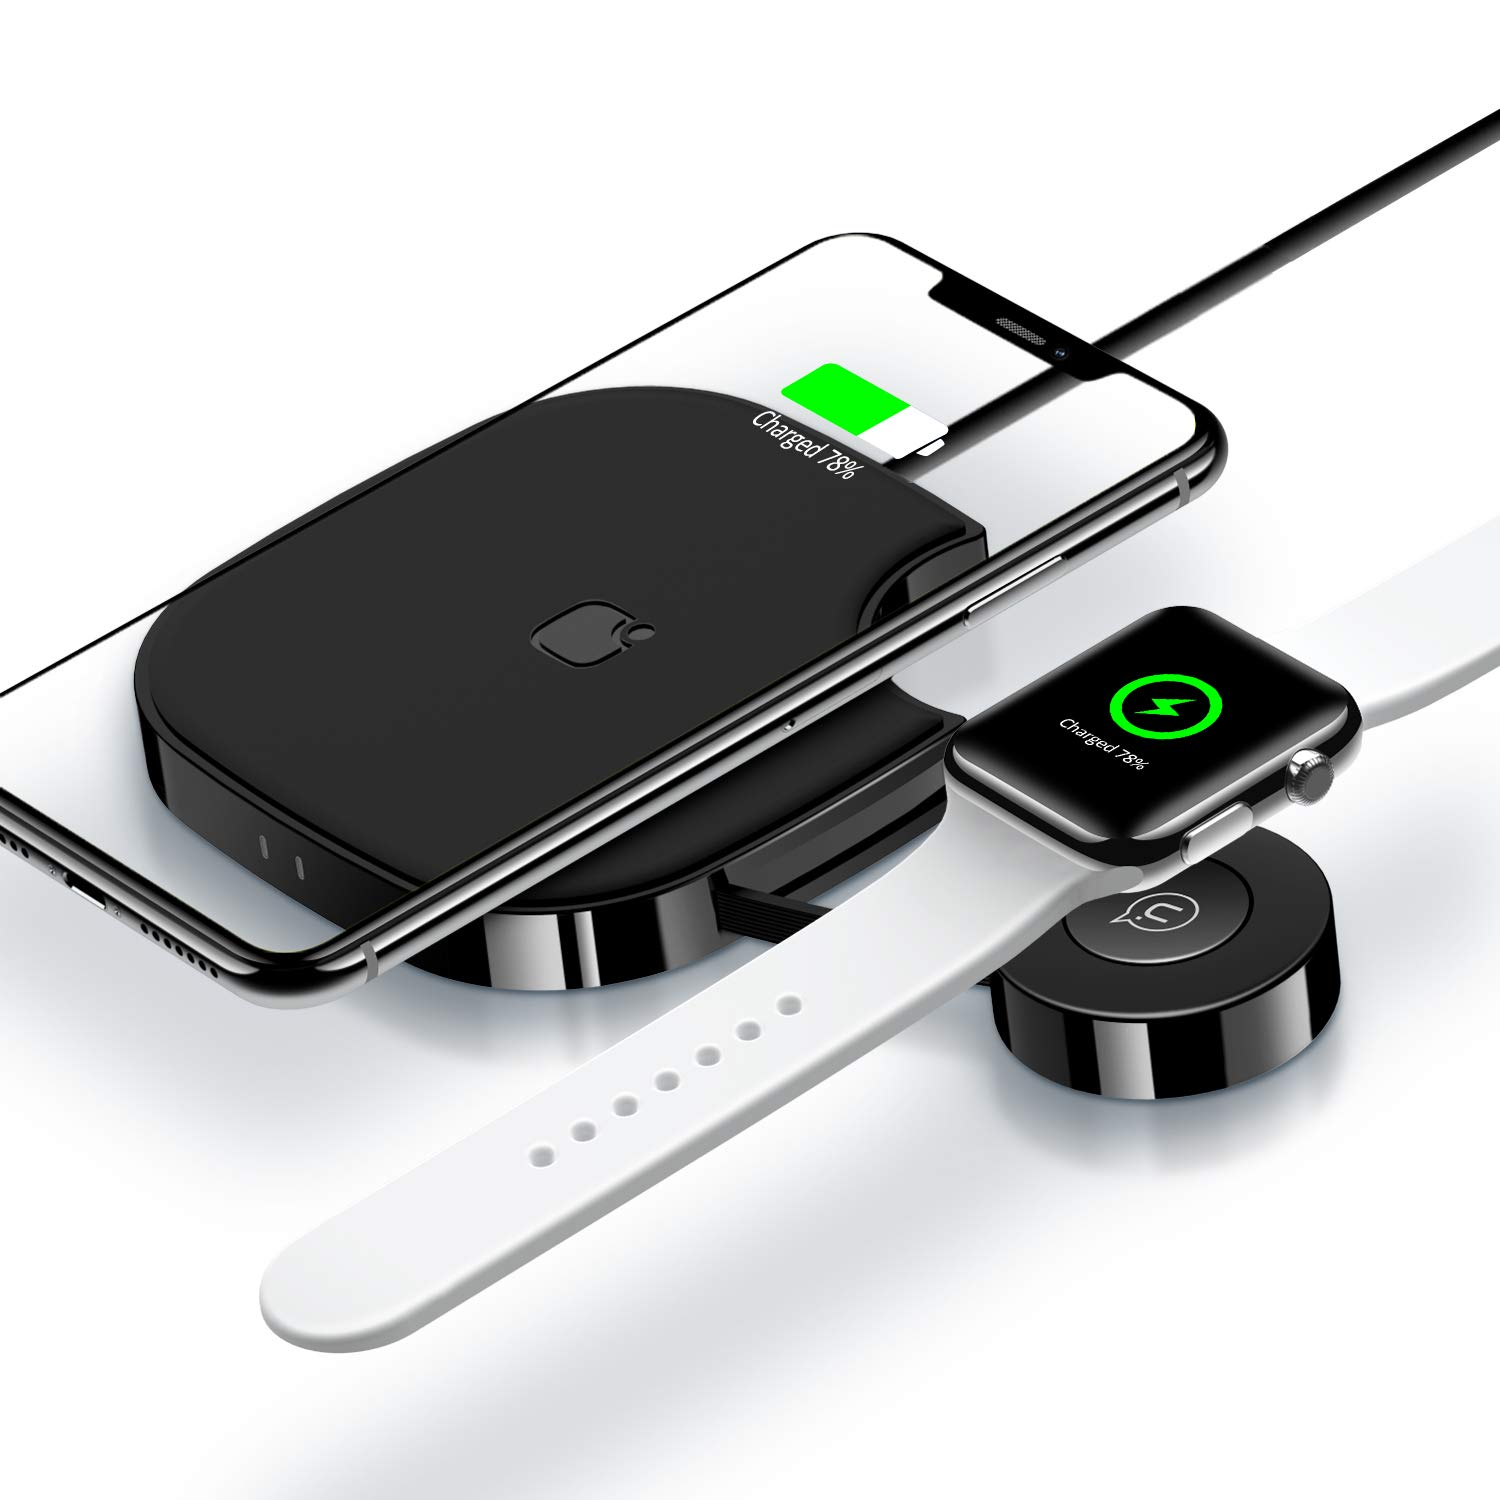 2 in 1 Wireless Charger for Apple Watch,Wireless Charger Pad Stand Qi Fast Wireless Charging Station for Apple Watch Series 4/3/2/1/Airpods 2/iPhone Xs Max/XR/X/8 Plus/8 Samsung Note 9/8 and More by YOUSAMS